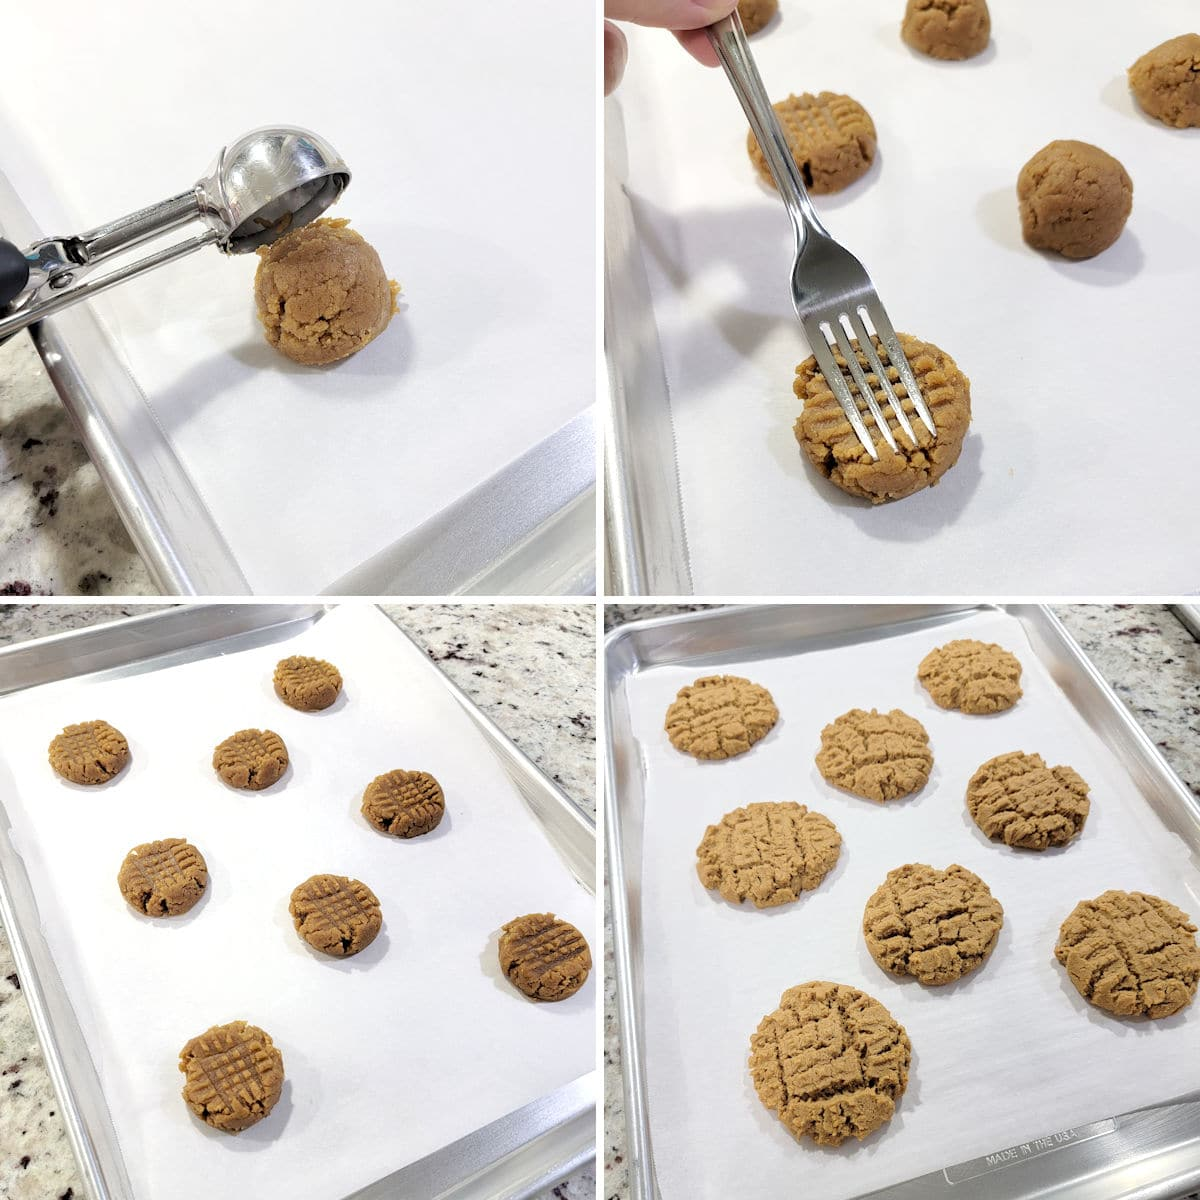 Placing cookie dough balls on a baking sheet and pressing down with the tines of a fork.